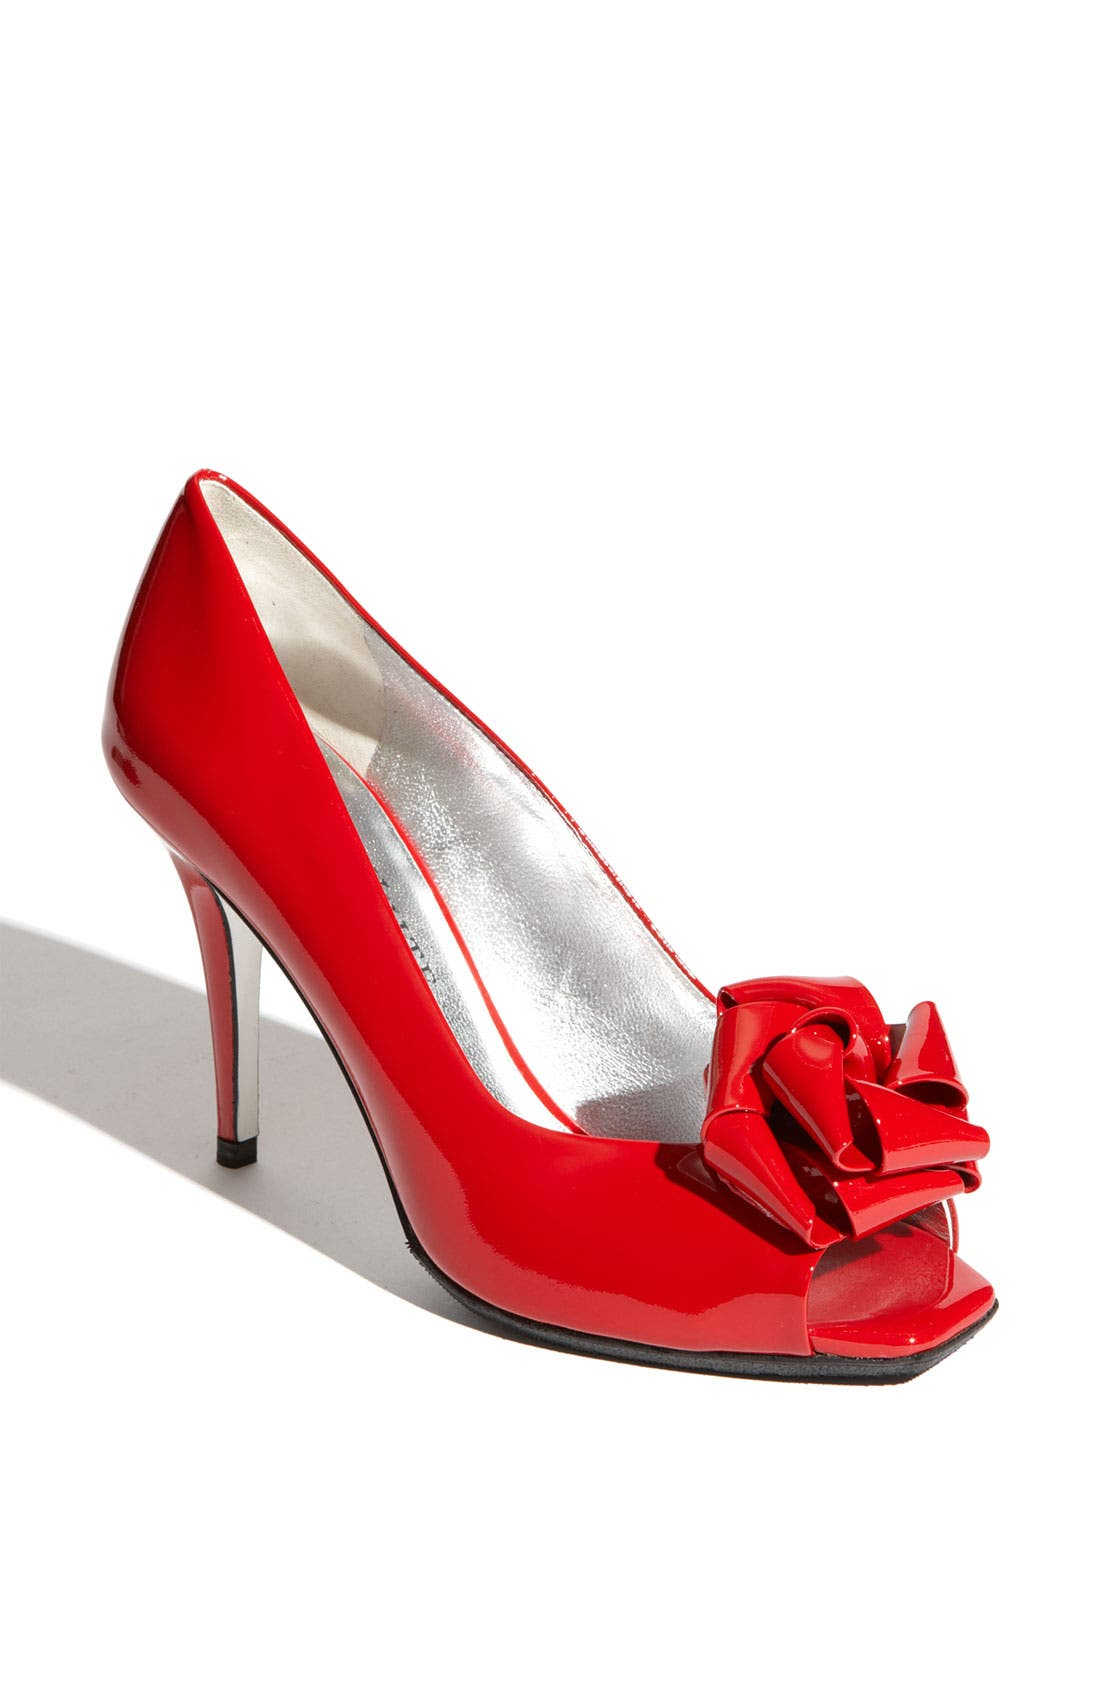 Alternate Image 1 Selected - Ron White 'Victoria' Pump